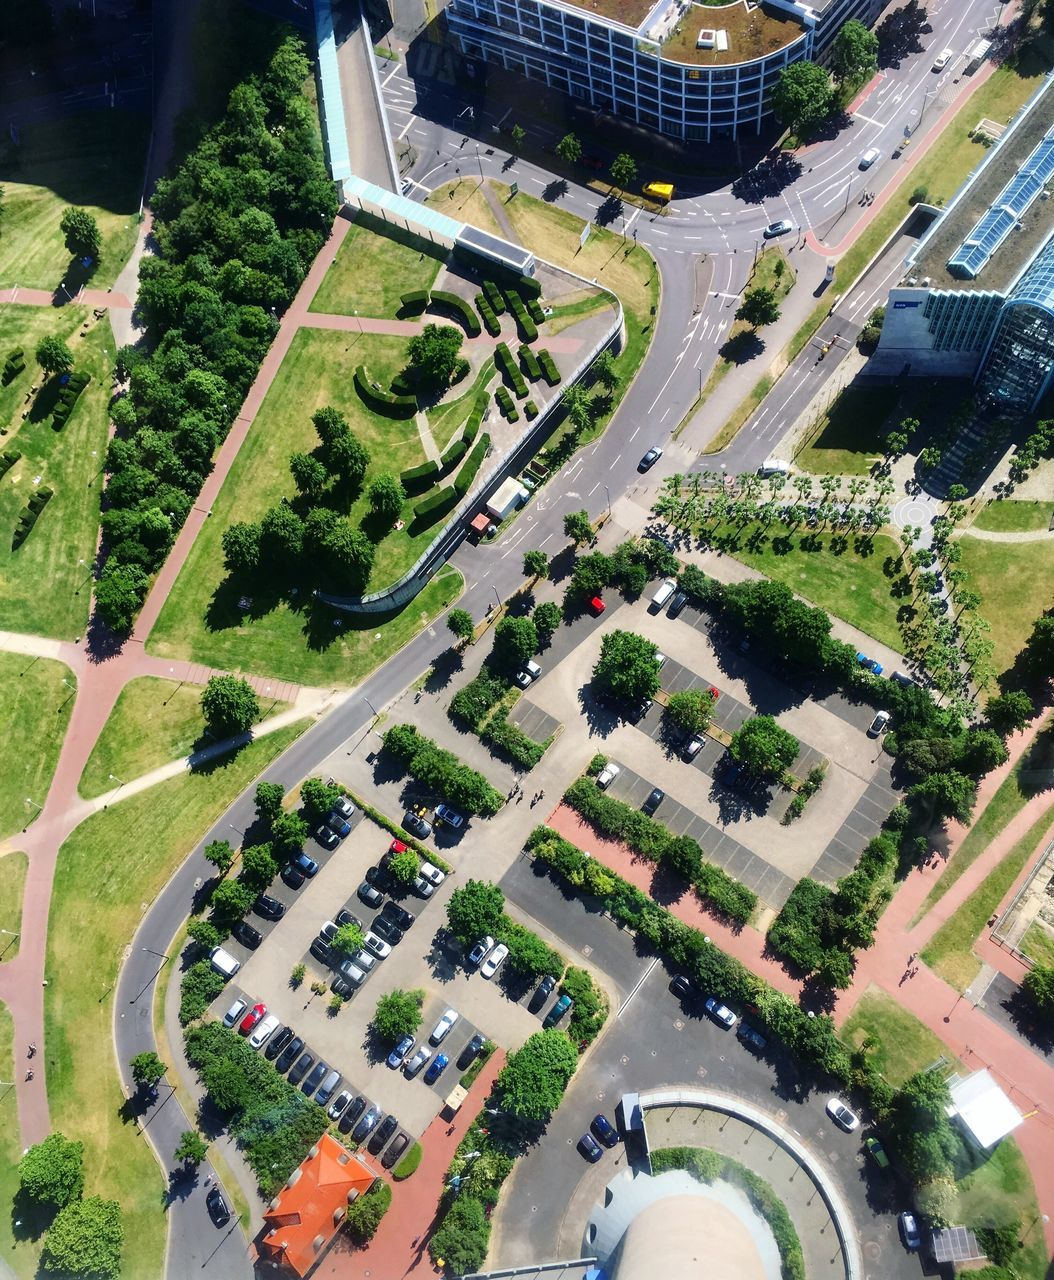 high angle view, road, tree, aerial view, architecture, transportation, building exterior, built structure, connection, car, day, street, city, land vehicle, outdoors, no people, water